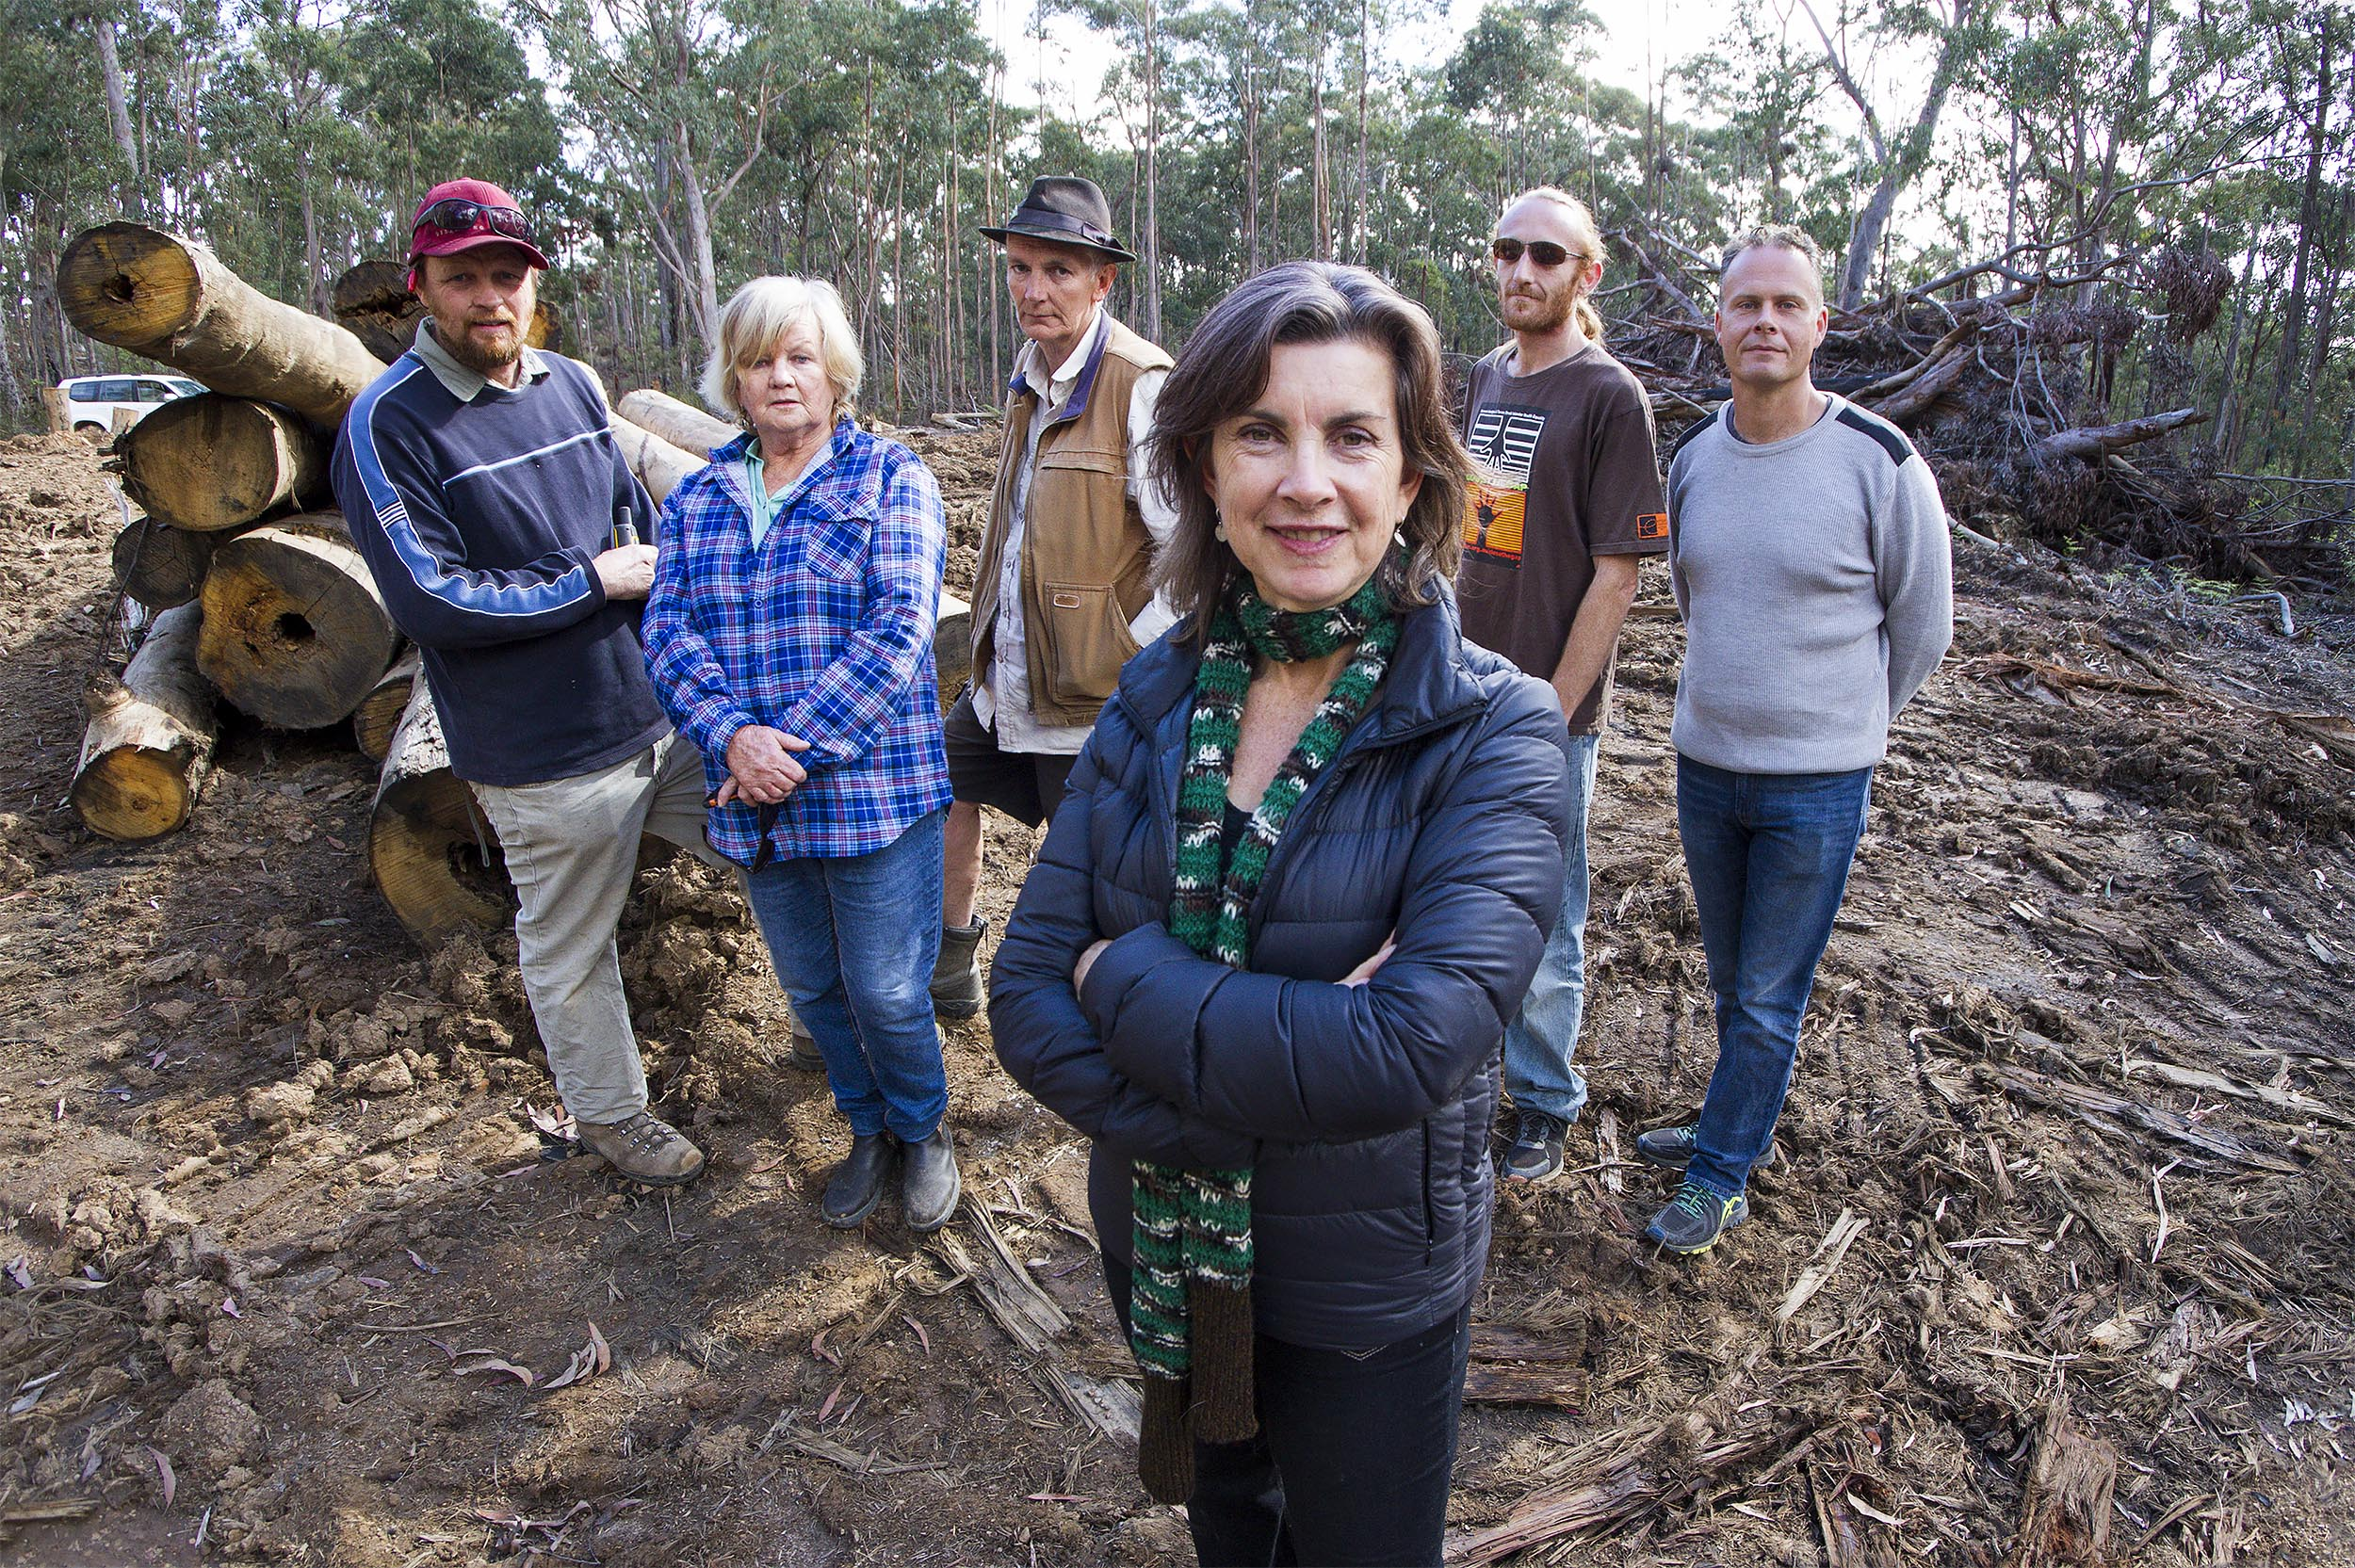 Minister refuses to rule out intensification of forest logging on North Coast - Dawn Walker MP